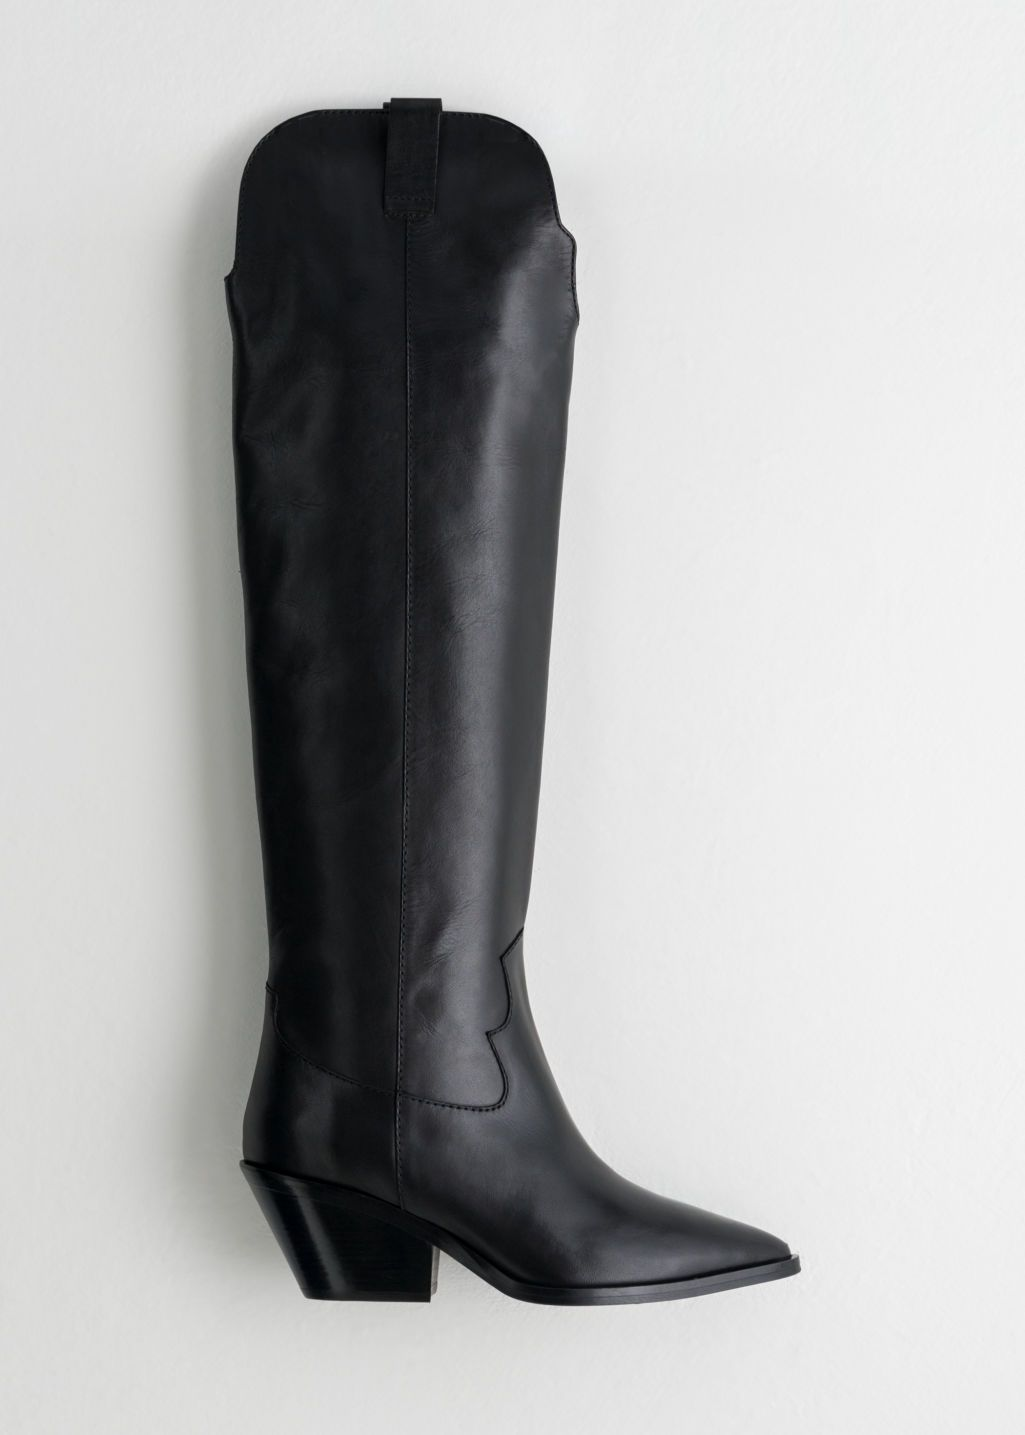 Boots, Knee high leather boots